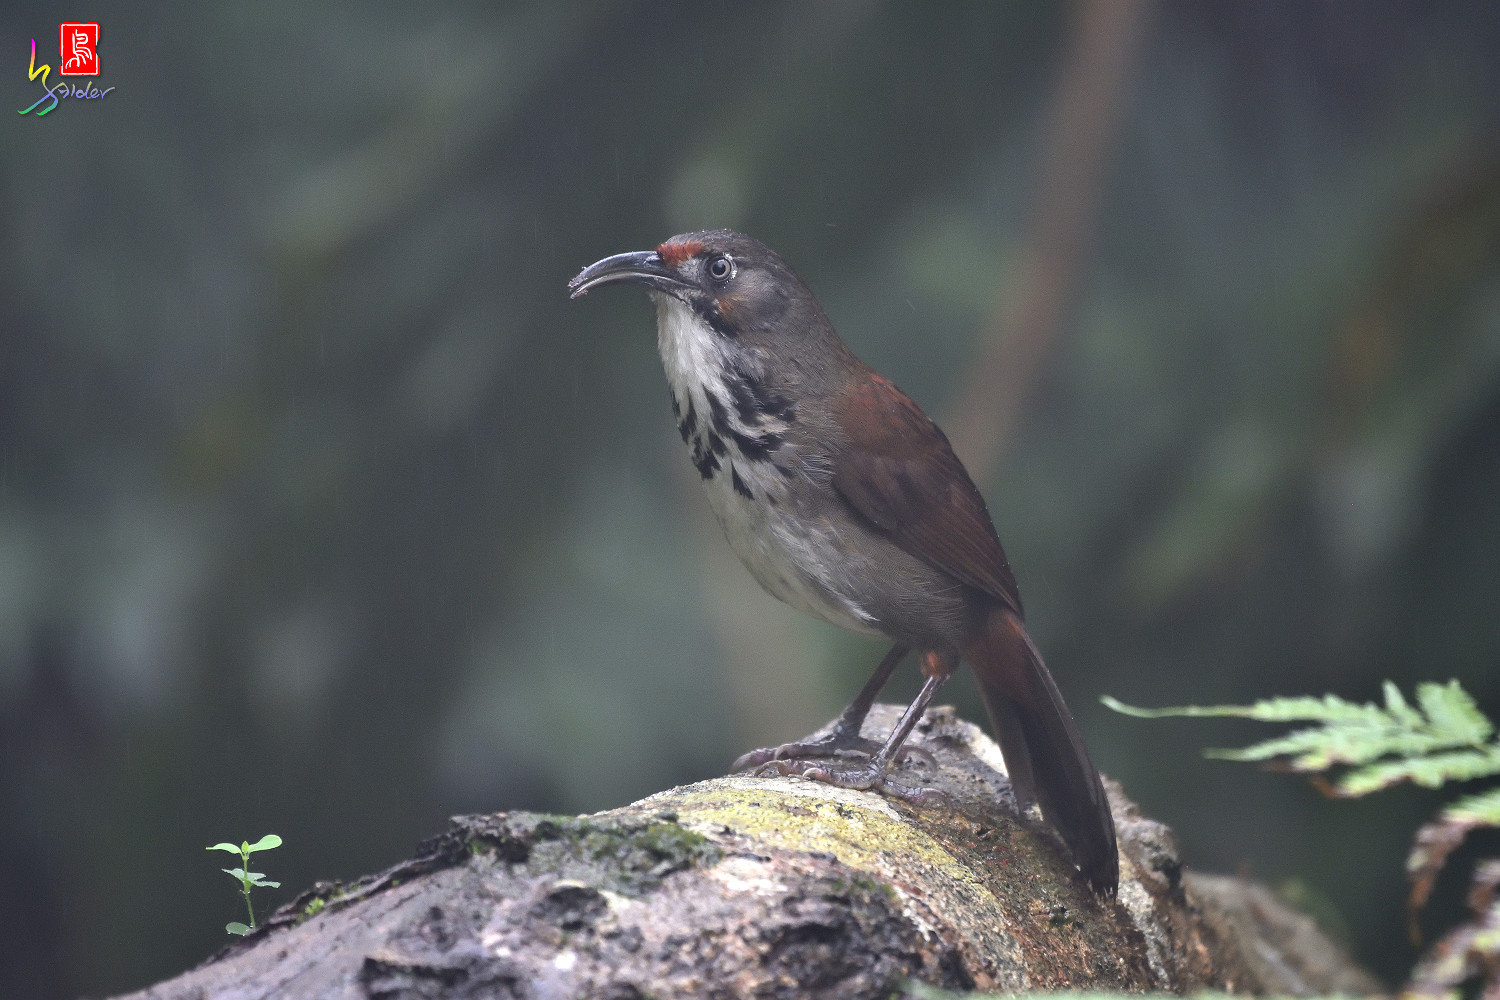 Rusty-cheeked_Scimitar-babbler_4360